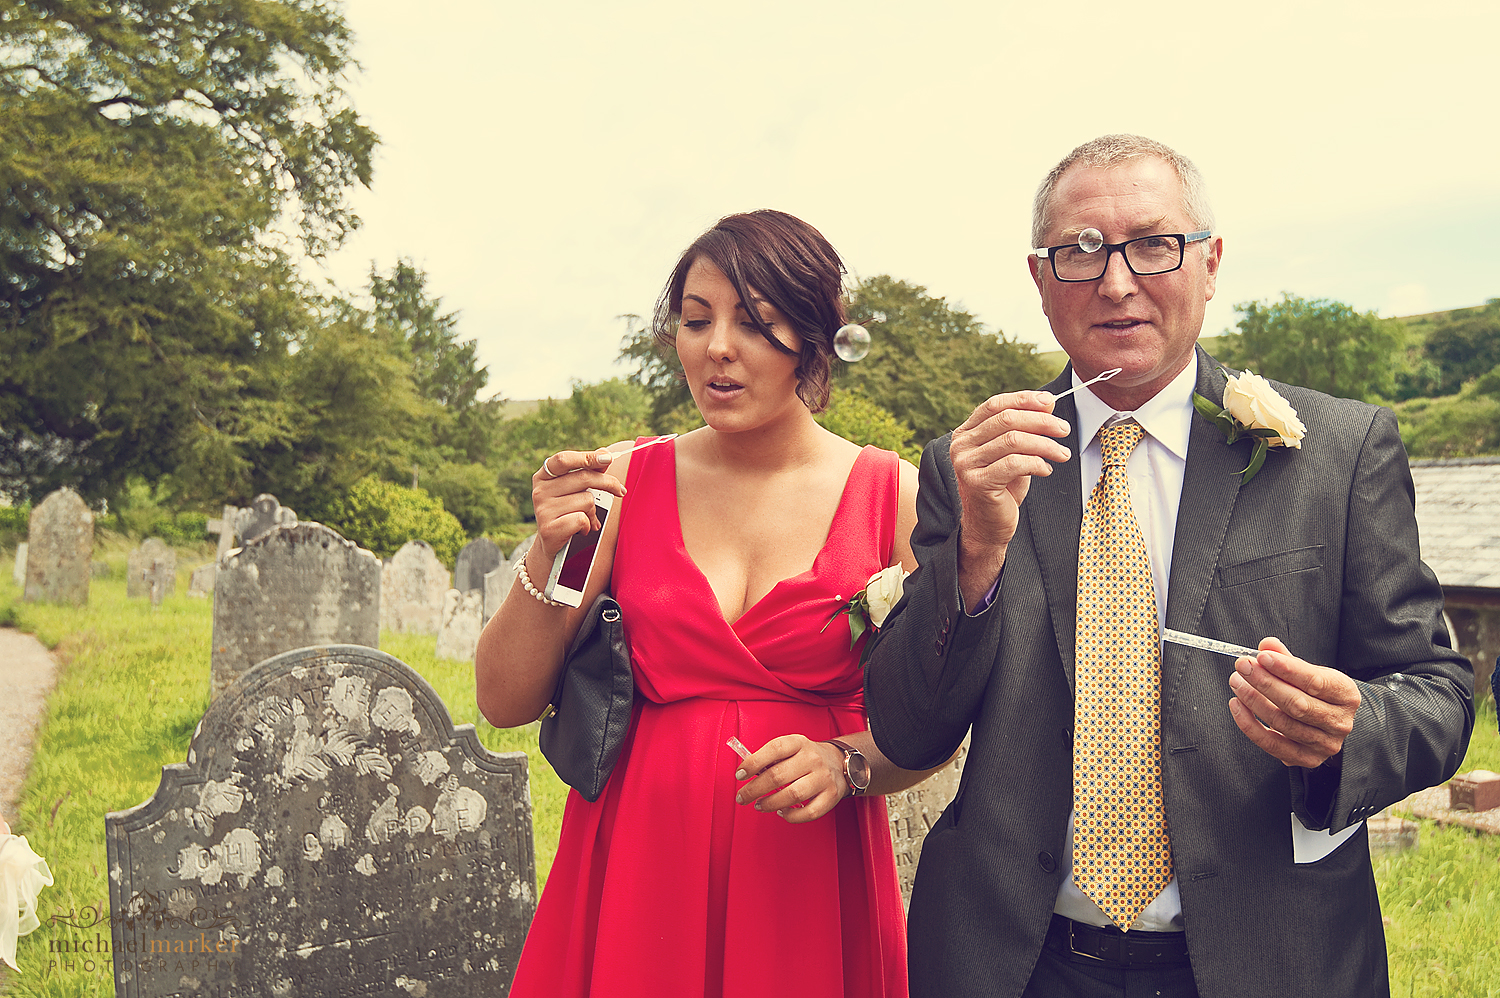 Dartmoor-wedding-day-bubbles